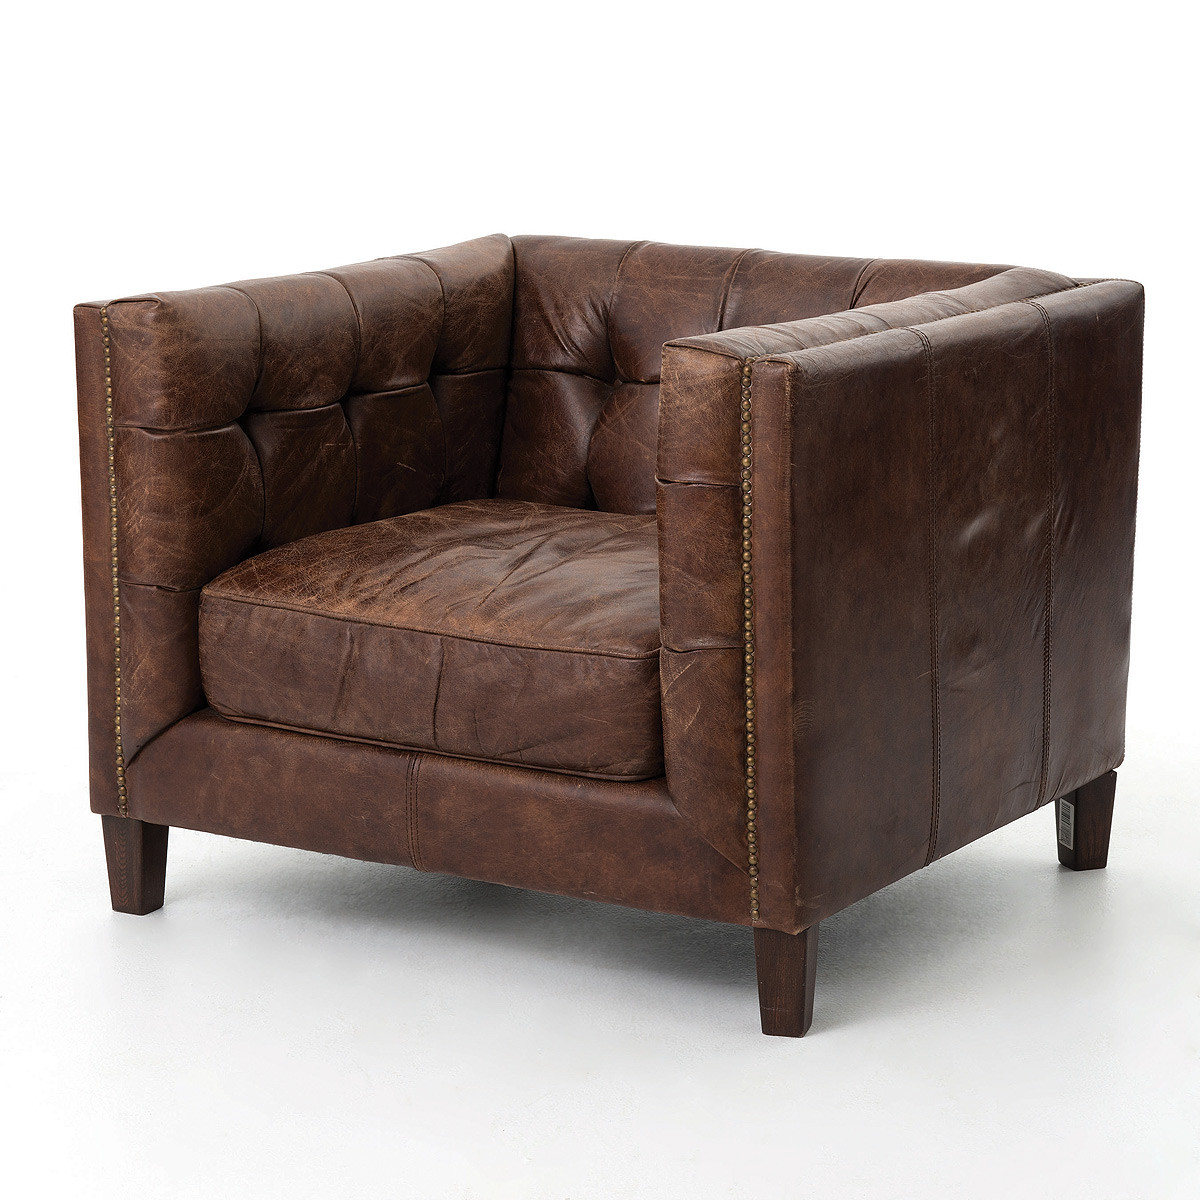 tufted club sofa and chaise lounge set abbott vintage cigar leather chair zin home